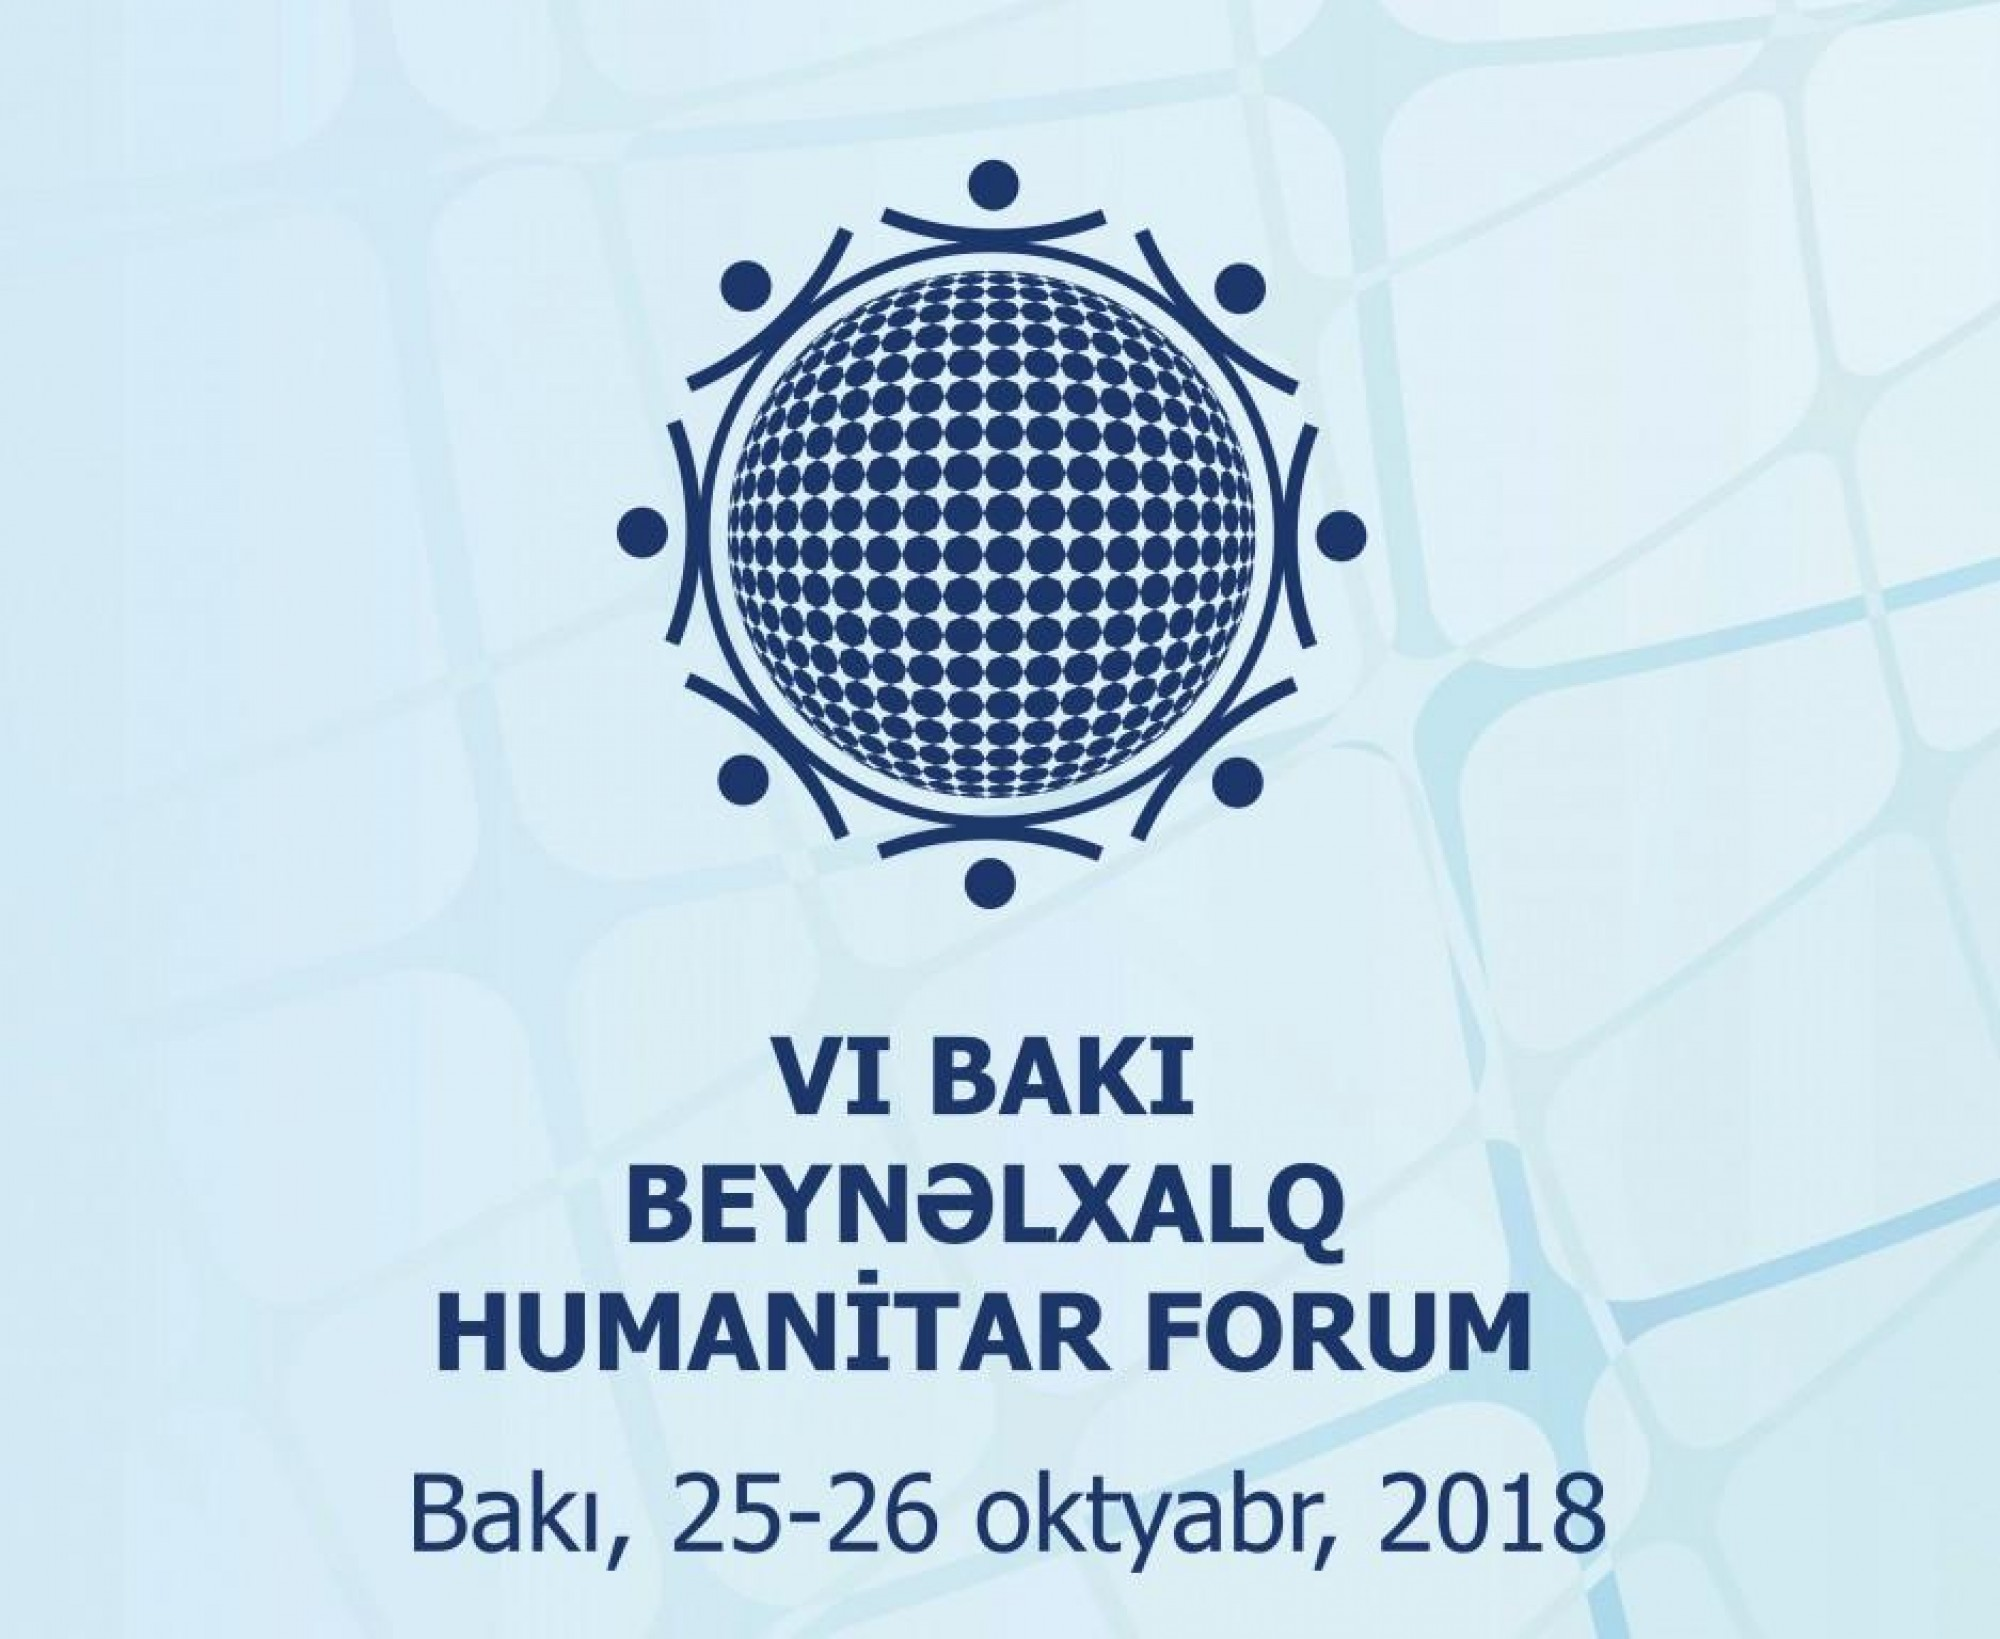 Montenegrin Culture minister at the 6th International Humanitarian Forum in Baku